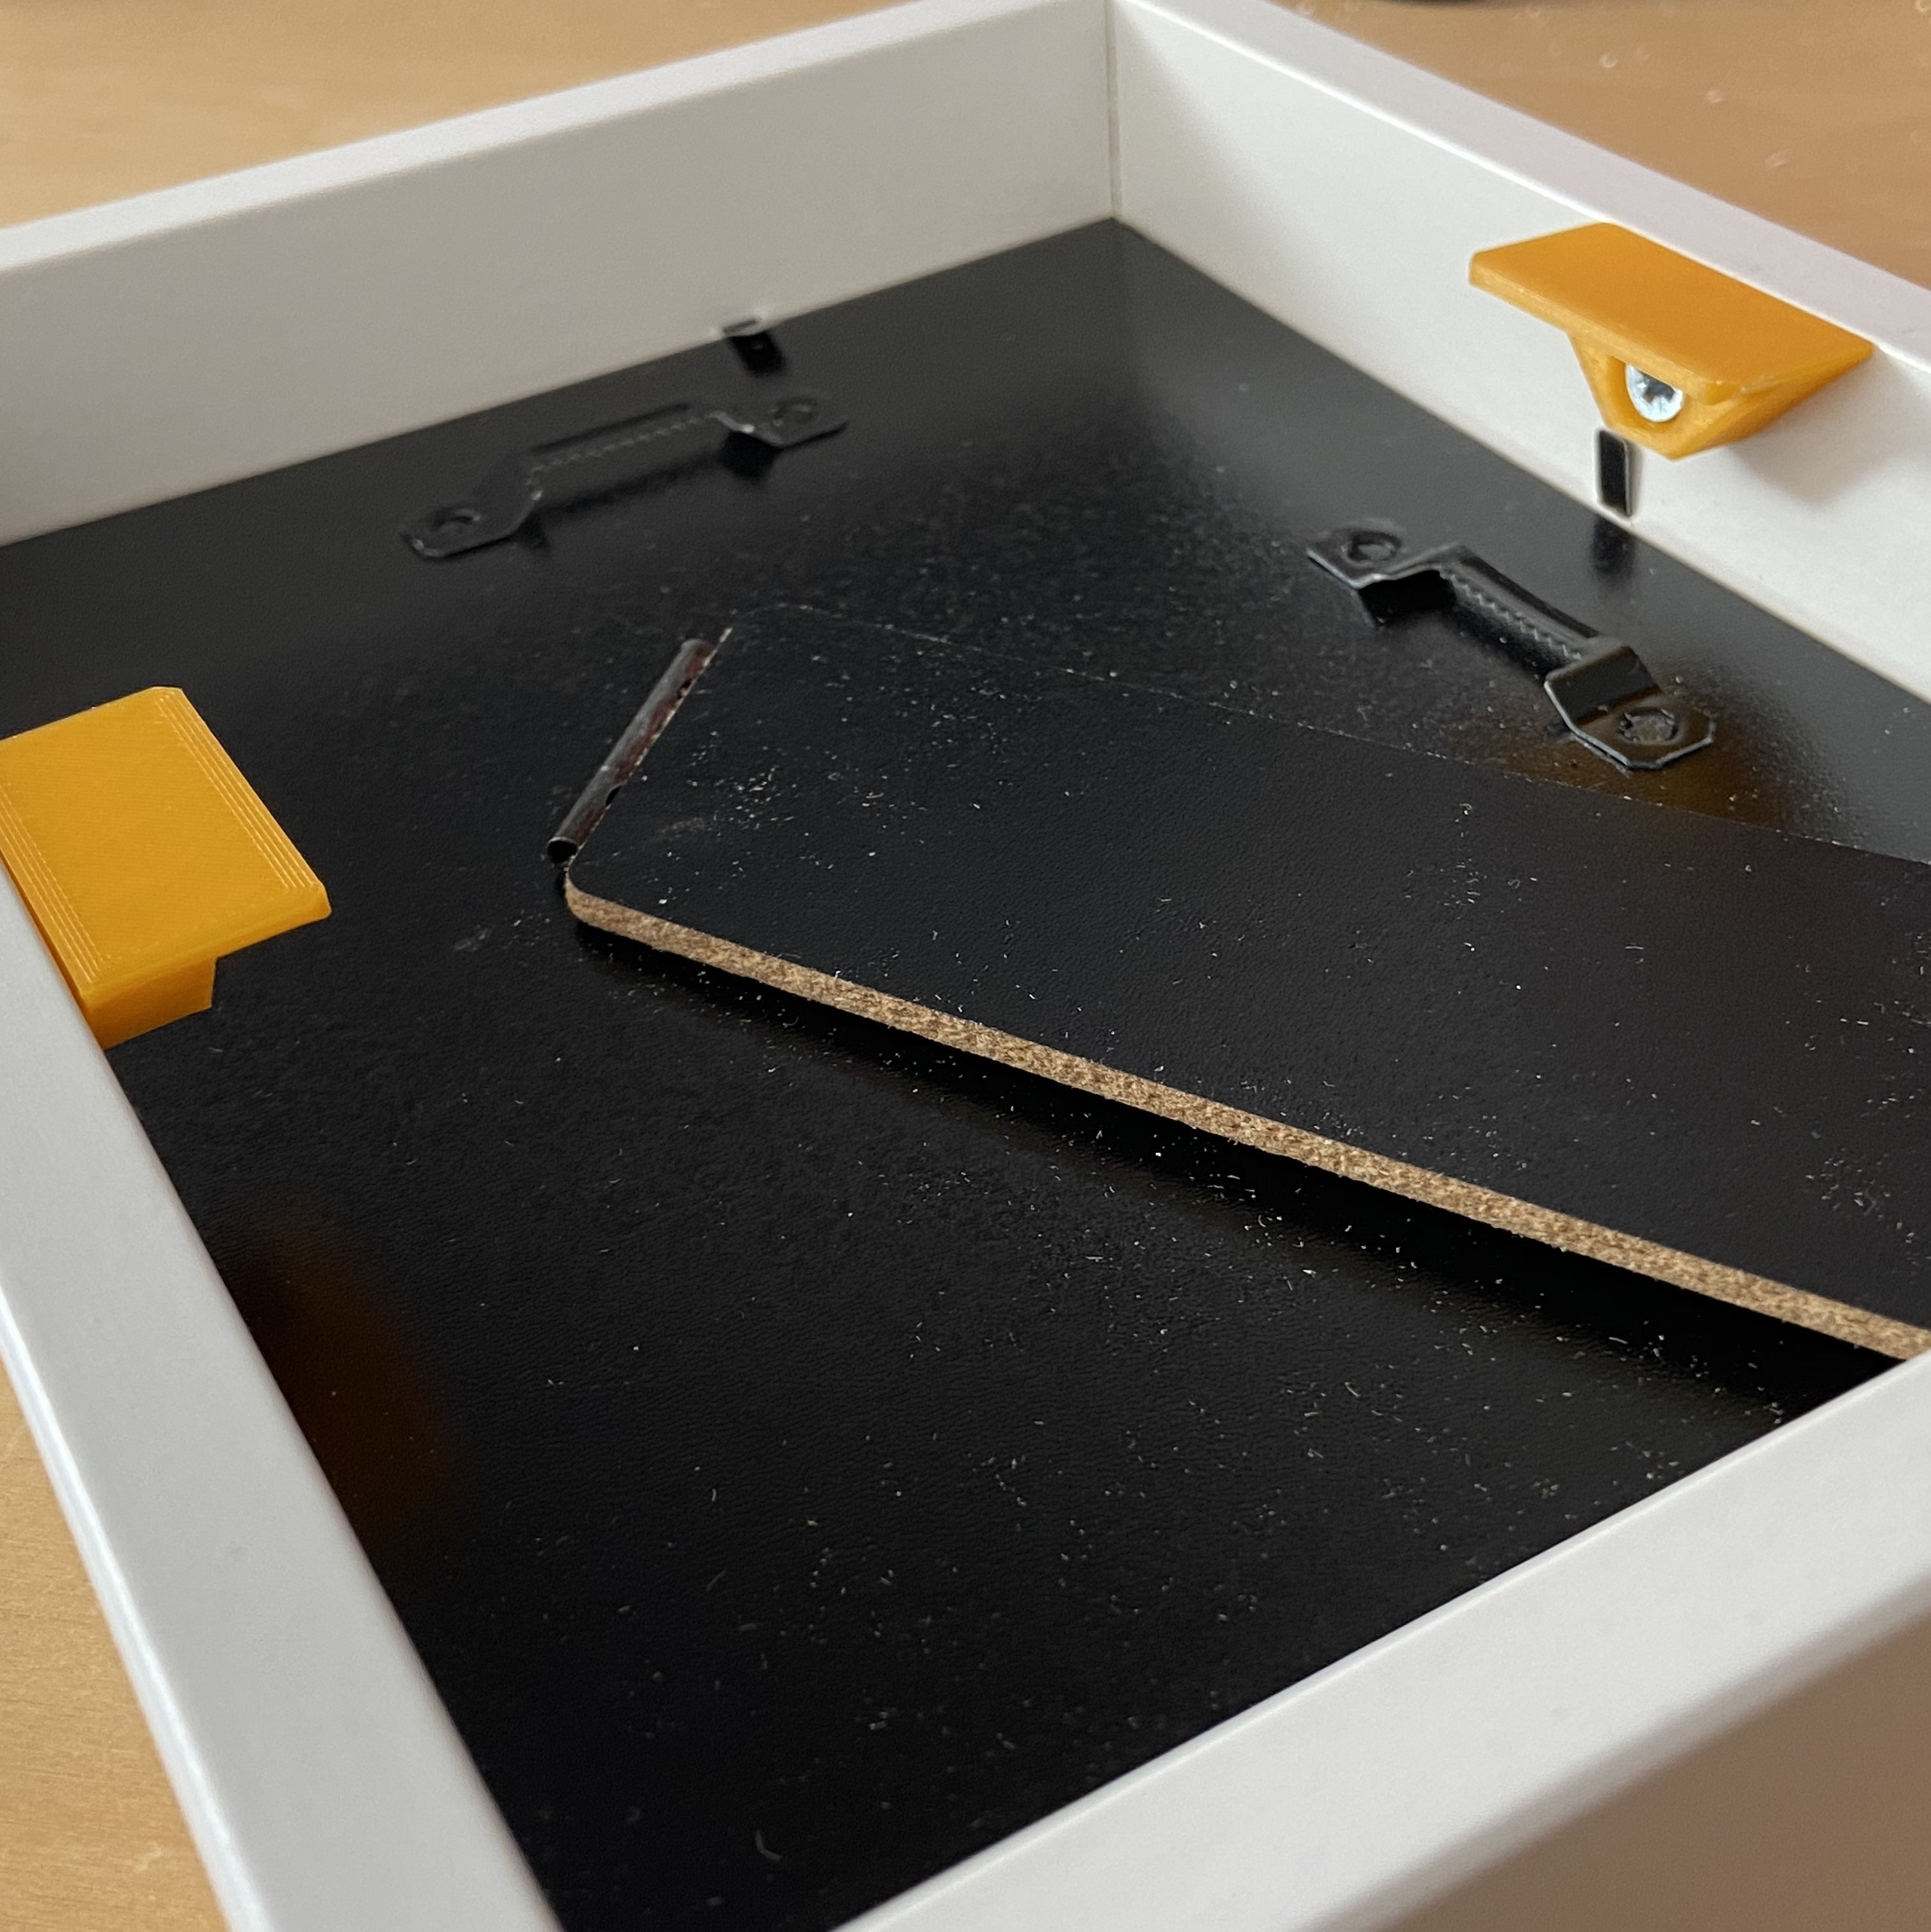 IMG_5931.JPG Download STL file Picture frame mounting system • Design to 3D print, da_syggy